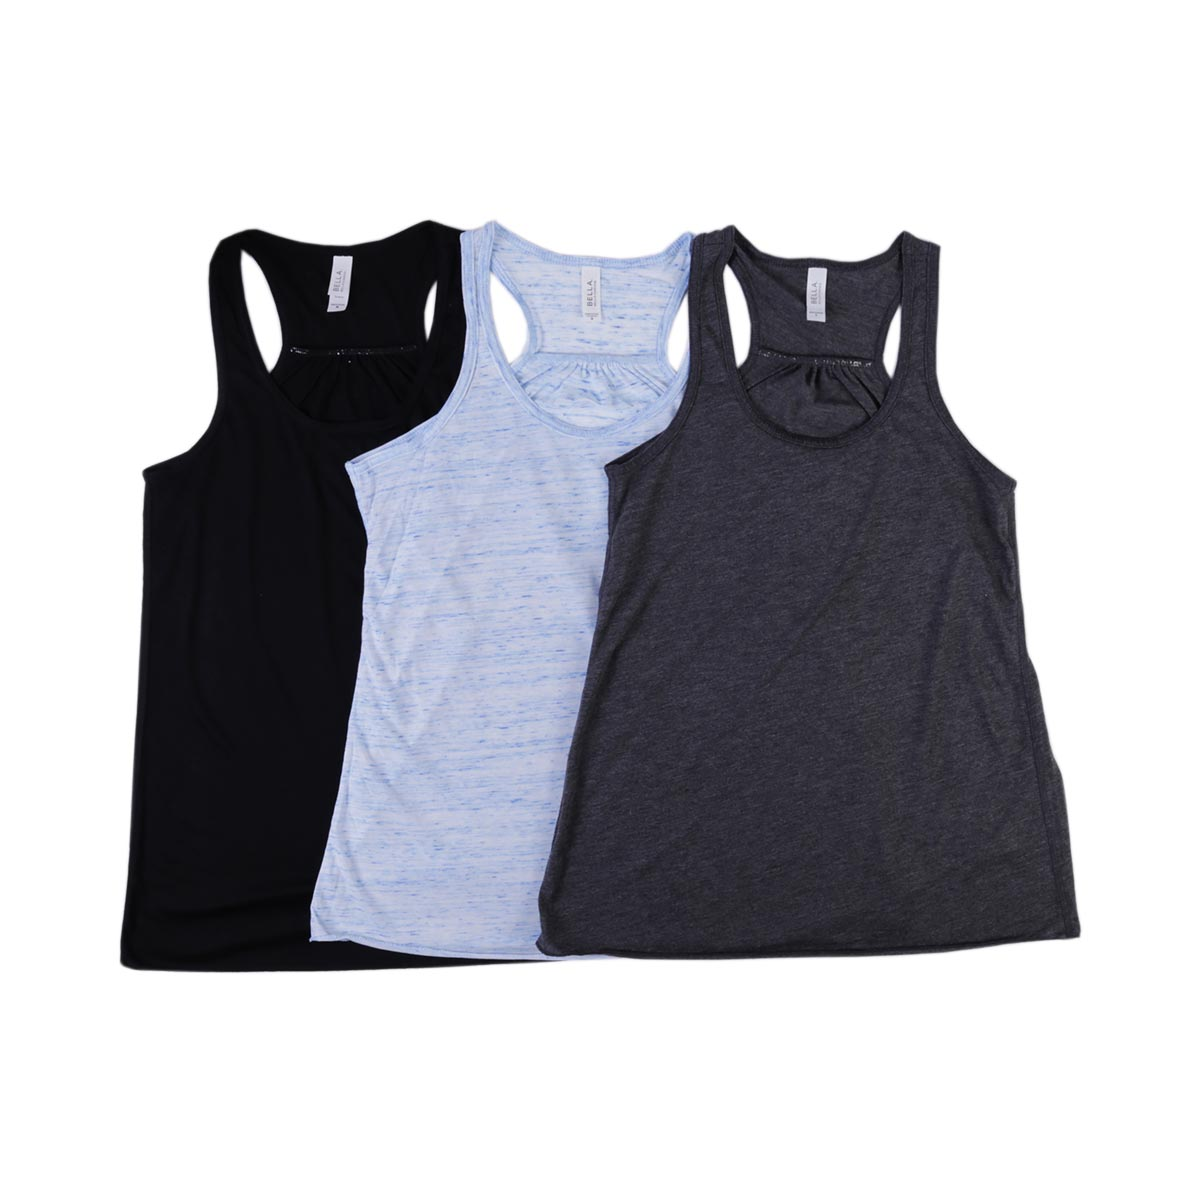 Bella + Canvas Ladies' Flowy Racerback Tanks